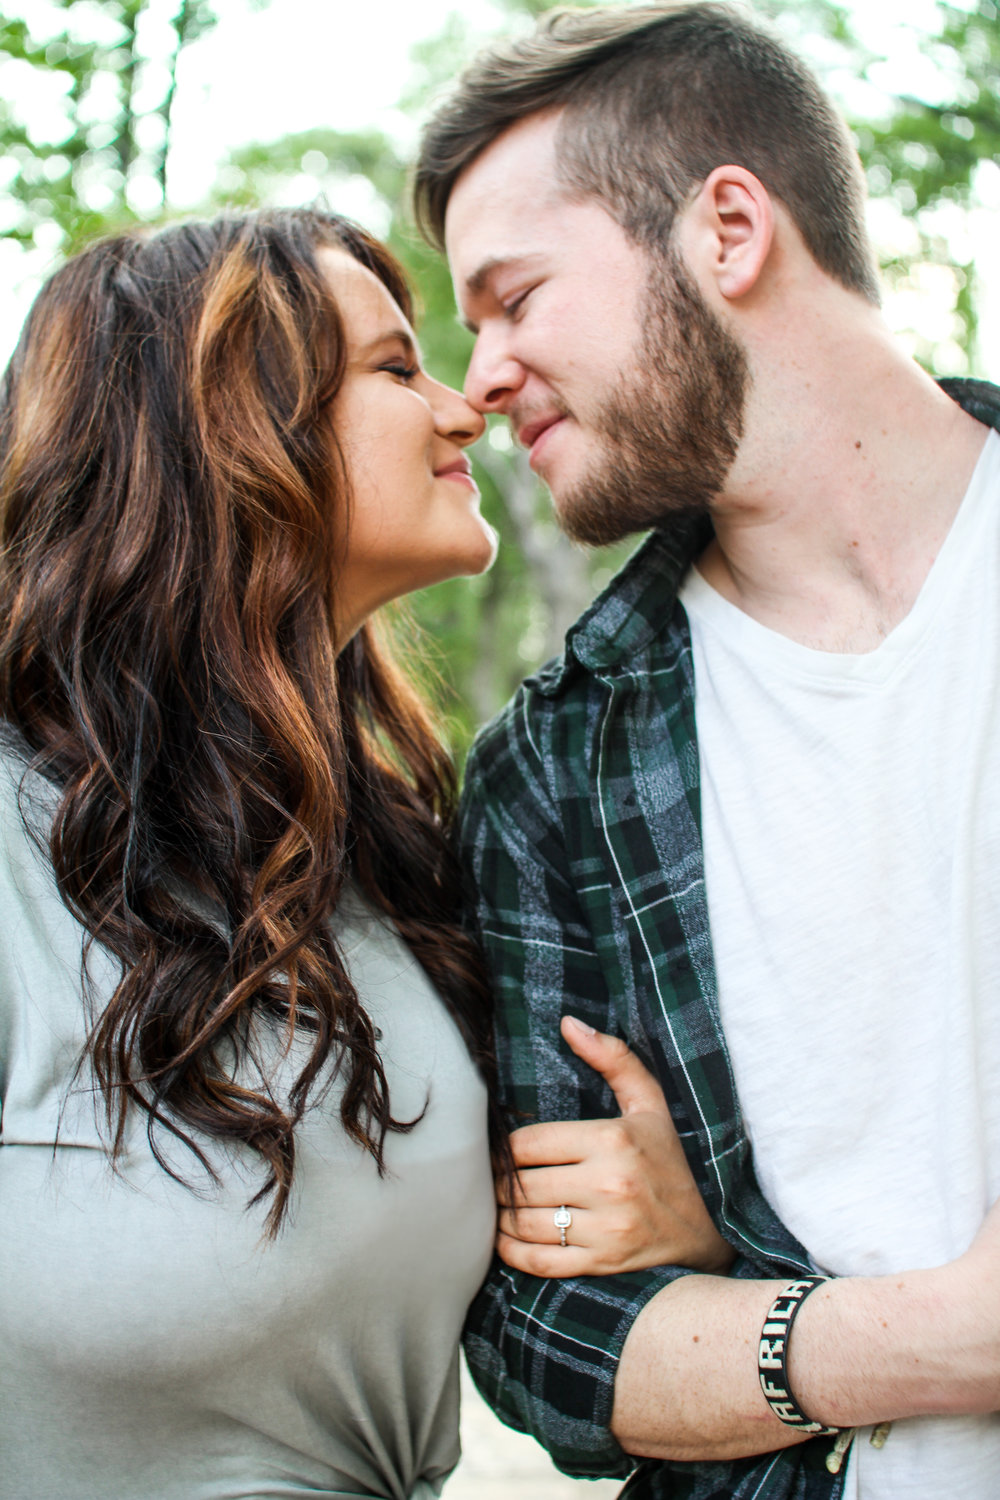 Leah & AJ Engagement Session | Flat Rock Park in Columbus, GA